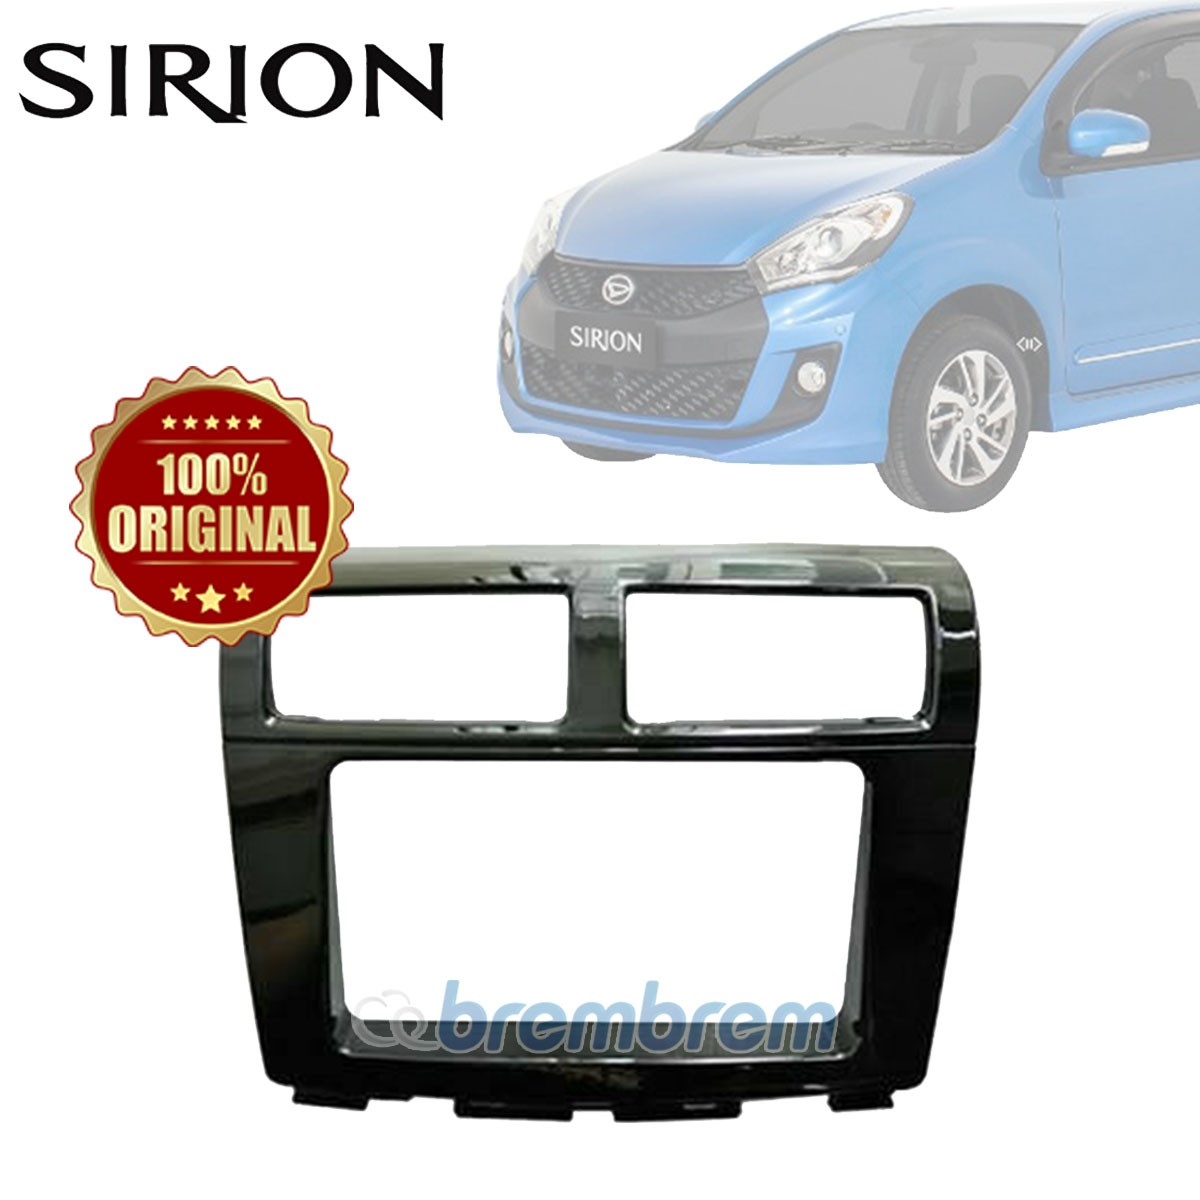 FRAME HEAD UNIT DAIHATSU ALL NEW SIRION 2012